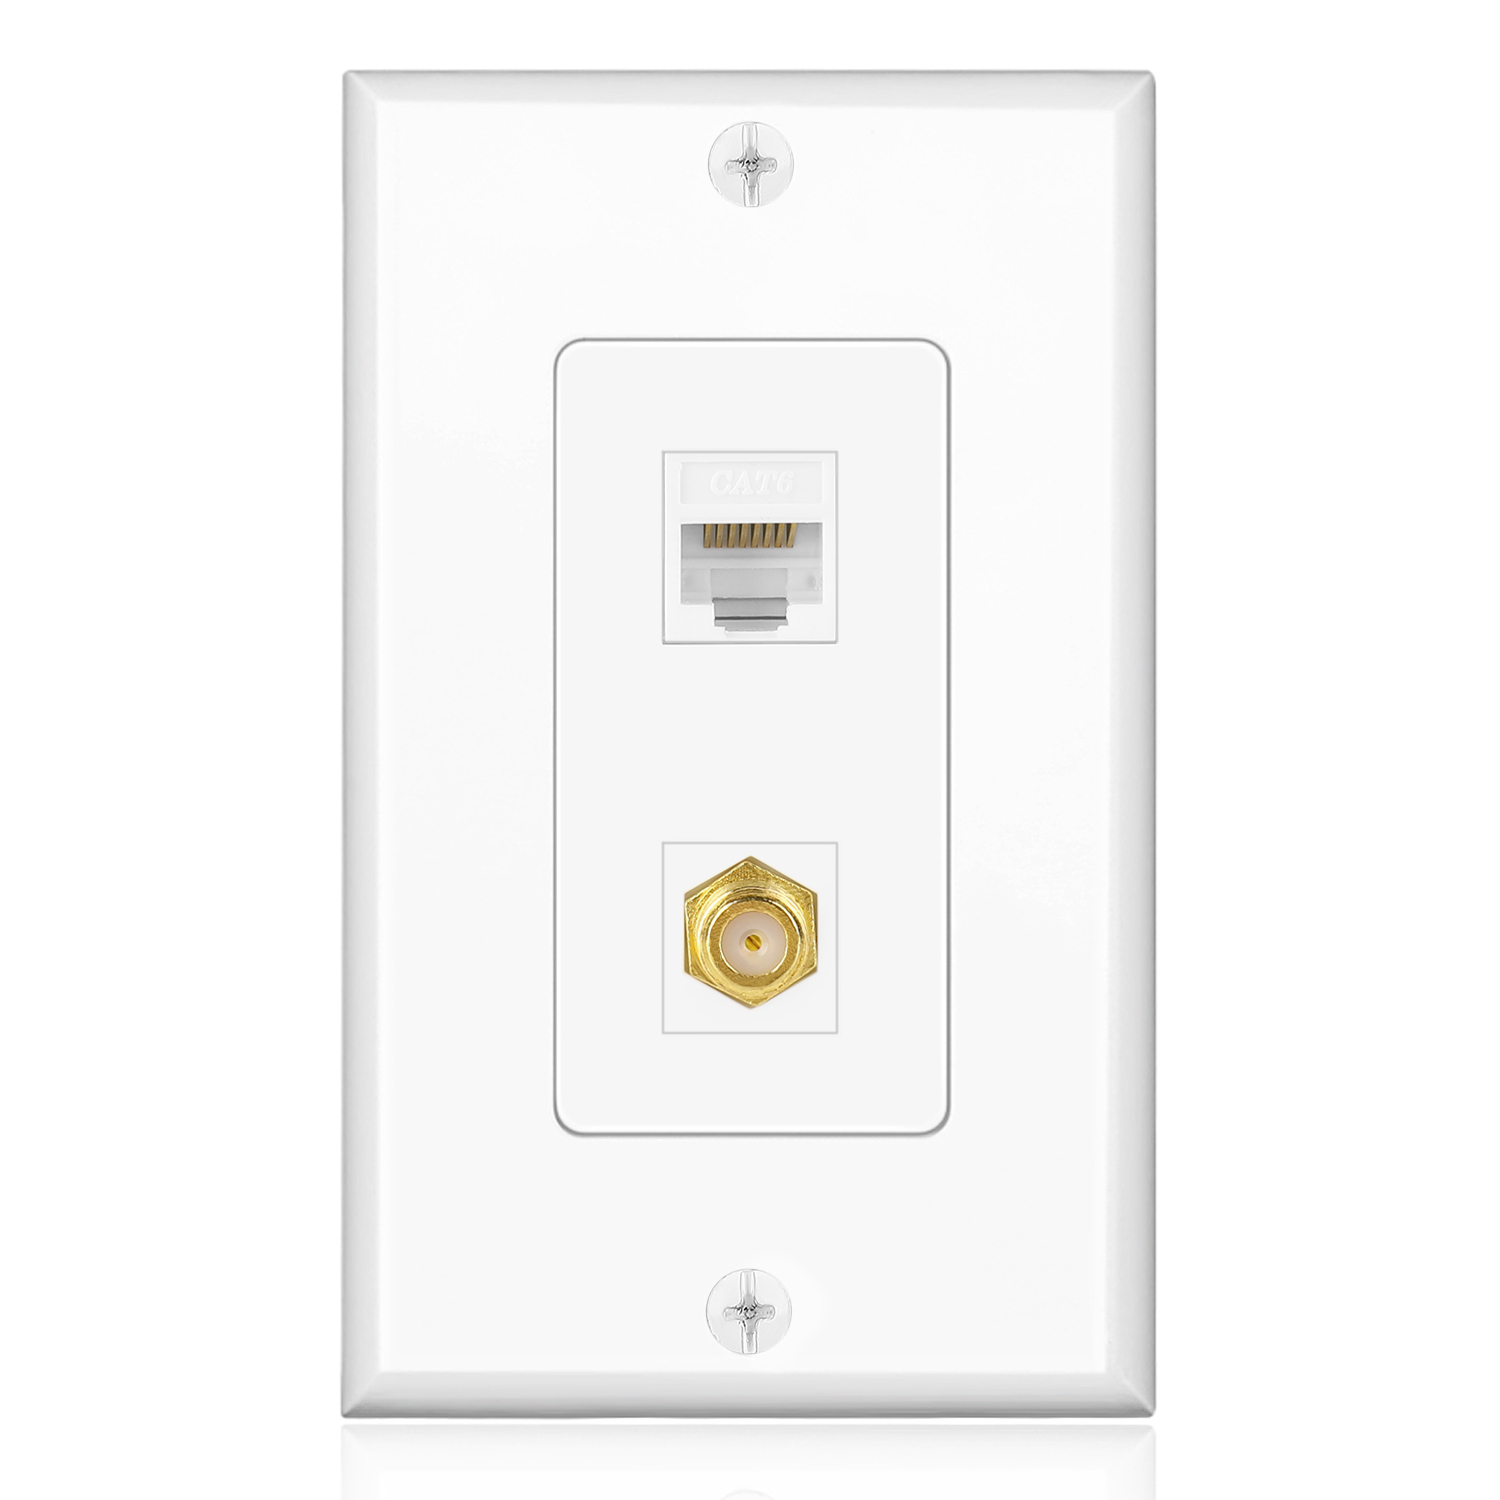 small resolution of ethernet coax wall plate with 1 rj45 port and 1 gold plated tv f rv furnace wiring diagrams tv wall plate wiring diagram rv